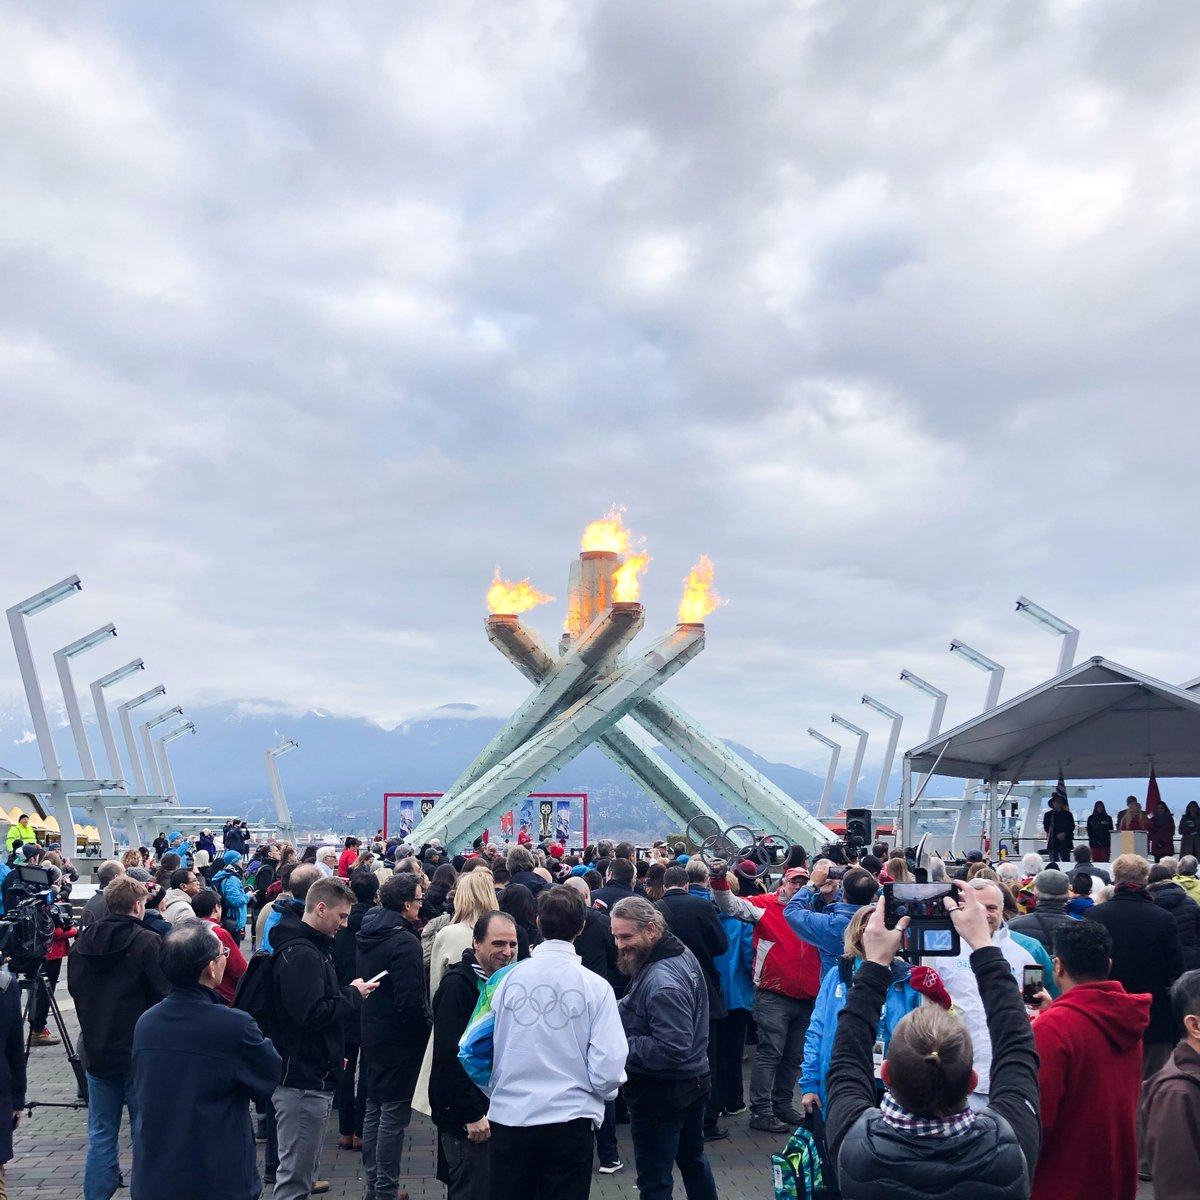 Few things bring a country together as much as the Olympics. As we celebrated the 10th anniversary of the Vancouver Winter Games last month, we were reminded of the pride and camaraderie we felt one decade ago. Isn't that a great feeling?   #leadgeneration #automotivemarketing https://t.co/d9XXVXT9zi